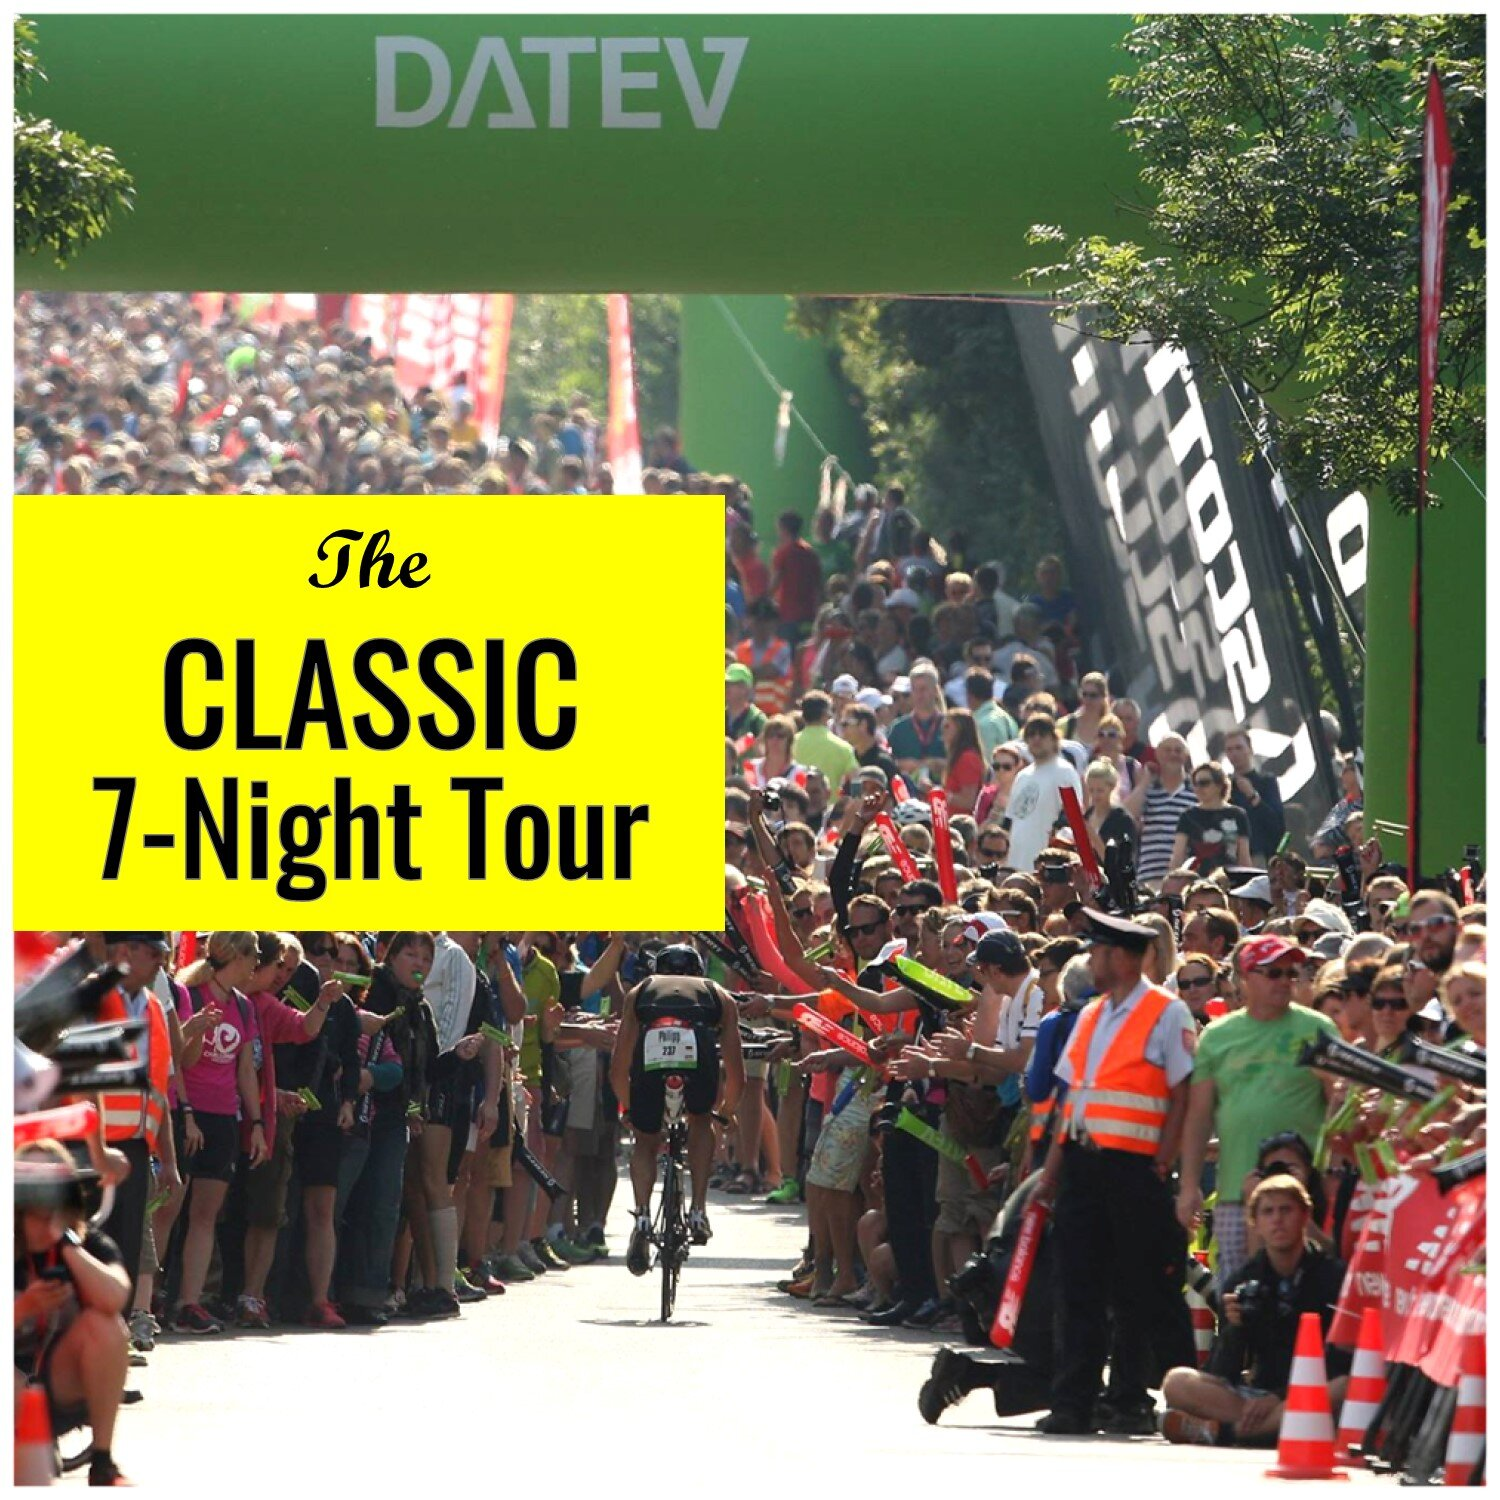 Challenge Roth 7-Night Classic - Race Entry Access7-Nights in 4* Nuremberg HotelDaily BreakfastChallenge Roth Tour ServicesIdeal for Teams, Clubs and GroupsGreat Value on Our Most Popular Tour!BRING YOUR ENTIRE TEAMCLICK HERE FOR DETAILS